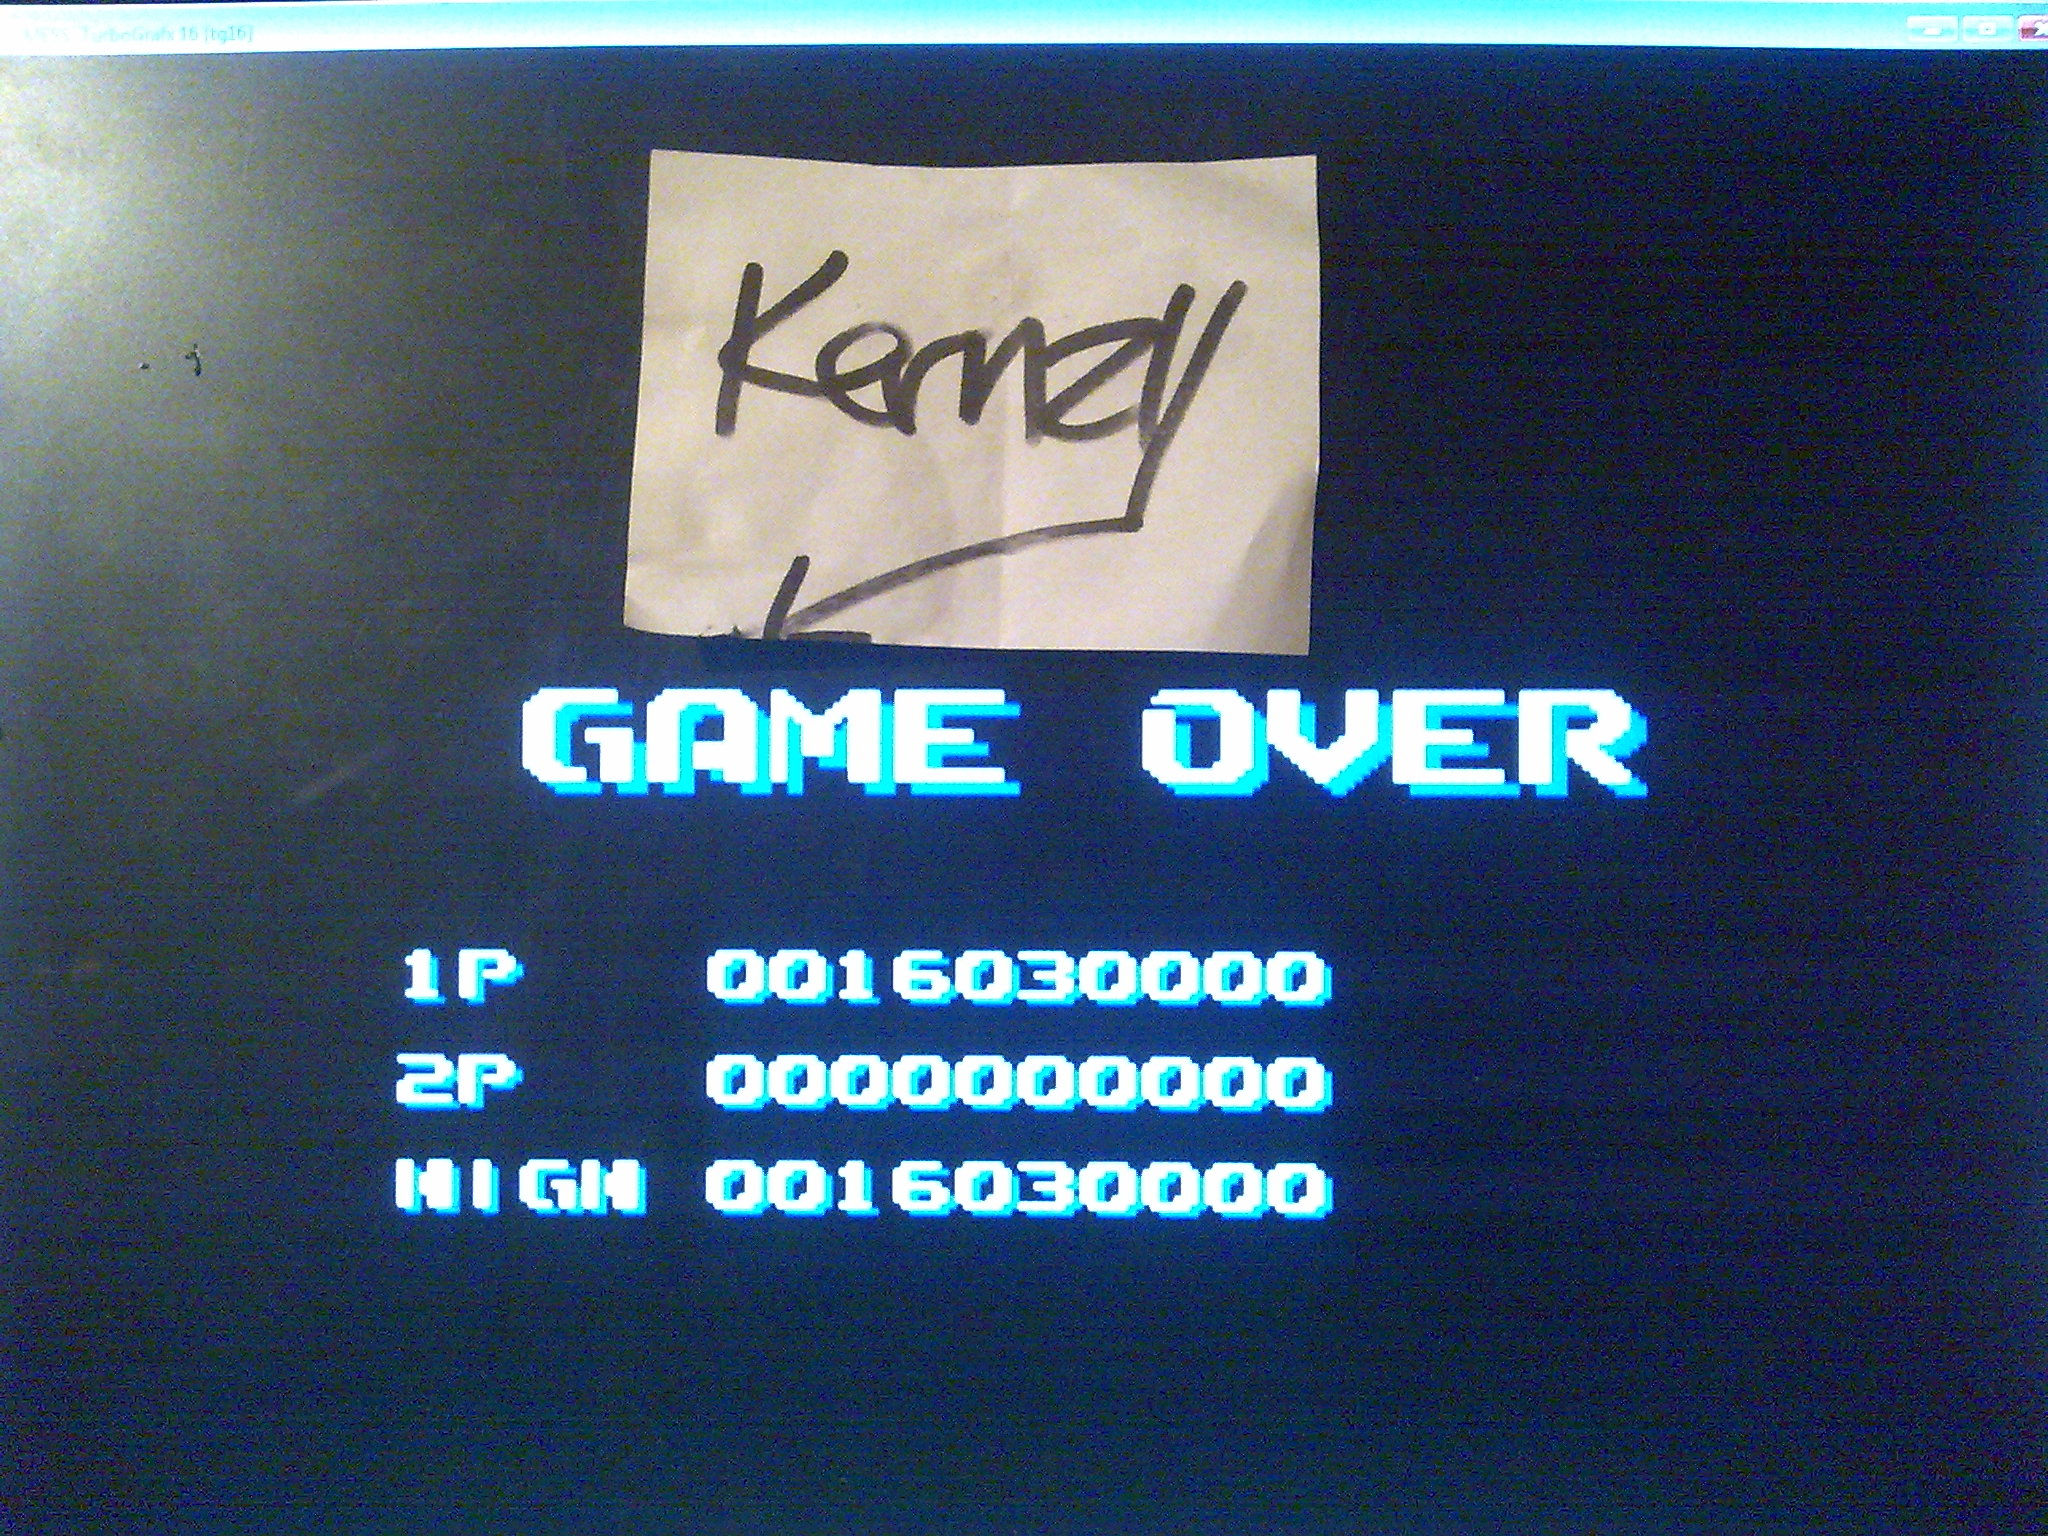 kernzy: Aero Blaster (TurboGrafx-16/PC Engine Emulated) 16,030,000 points on 2014-10-11 15:12:05